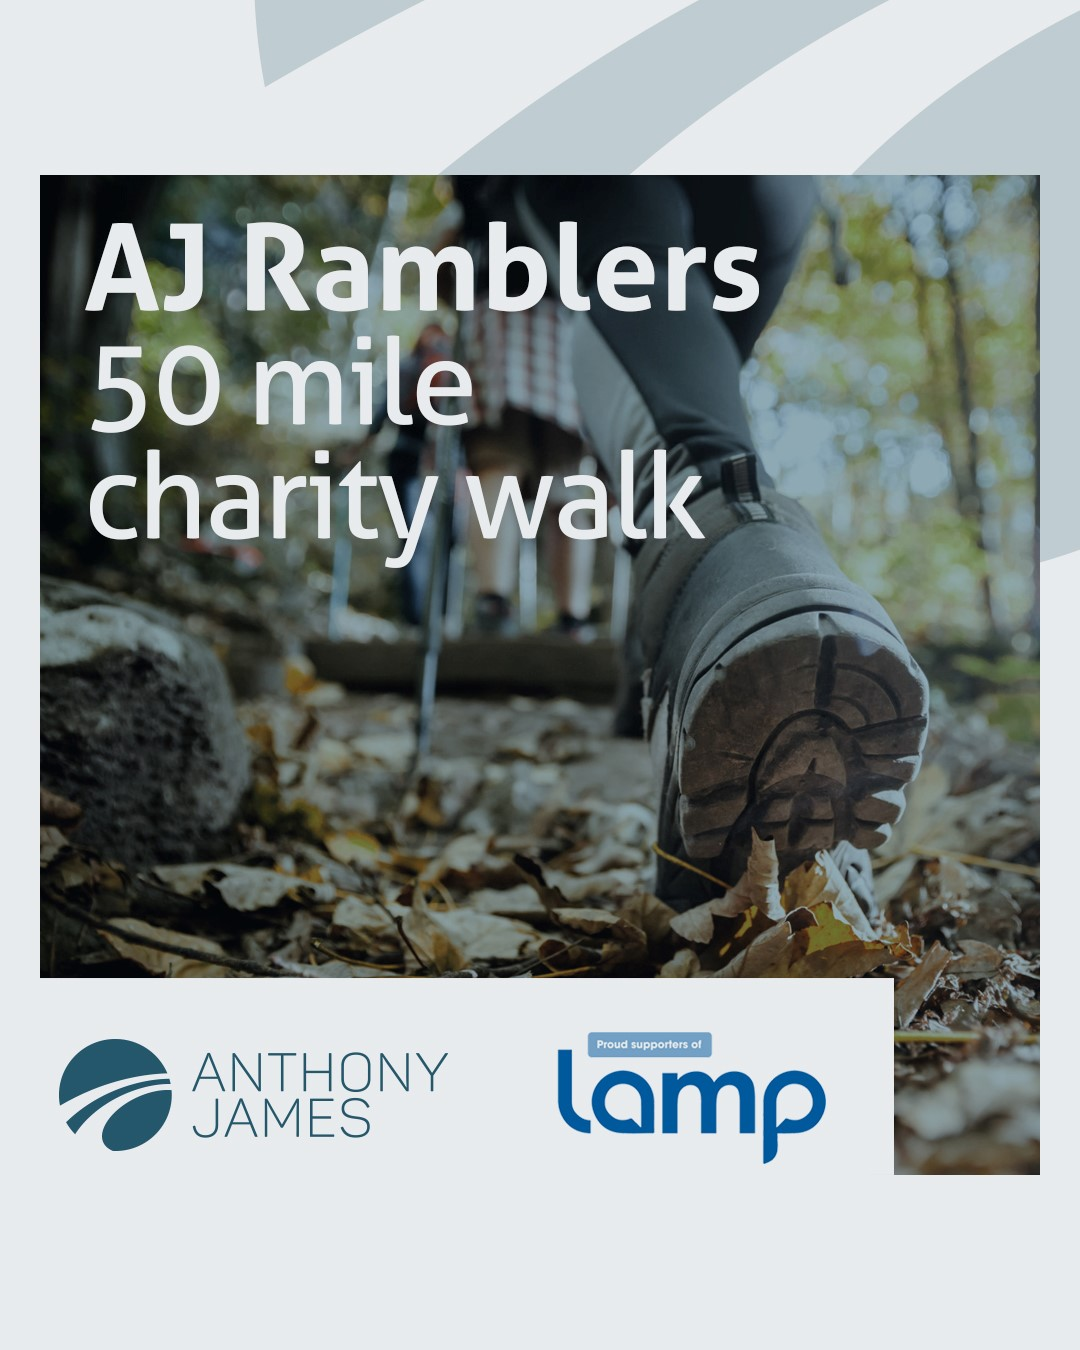 Anthony James insurance brokers to support Lamp mental health charity